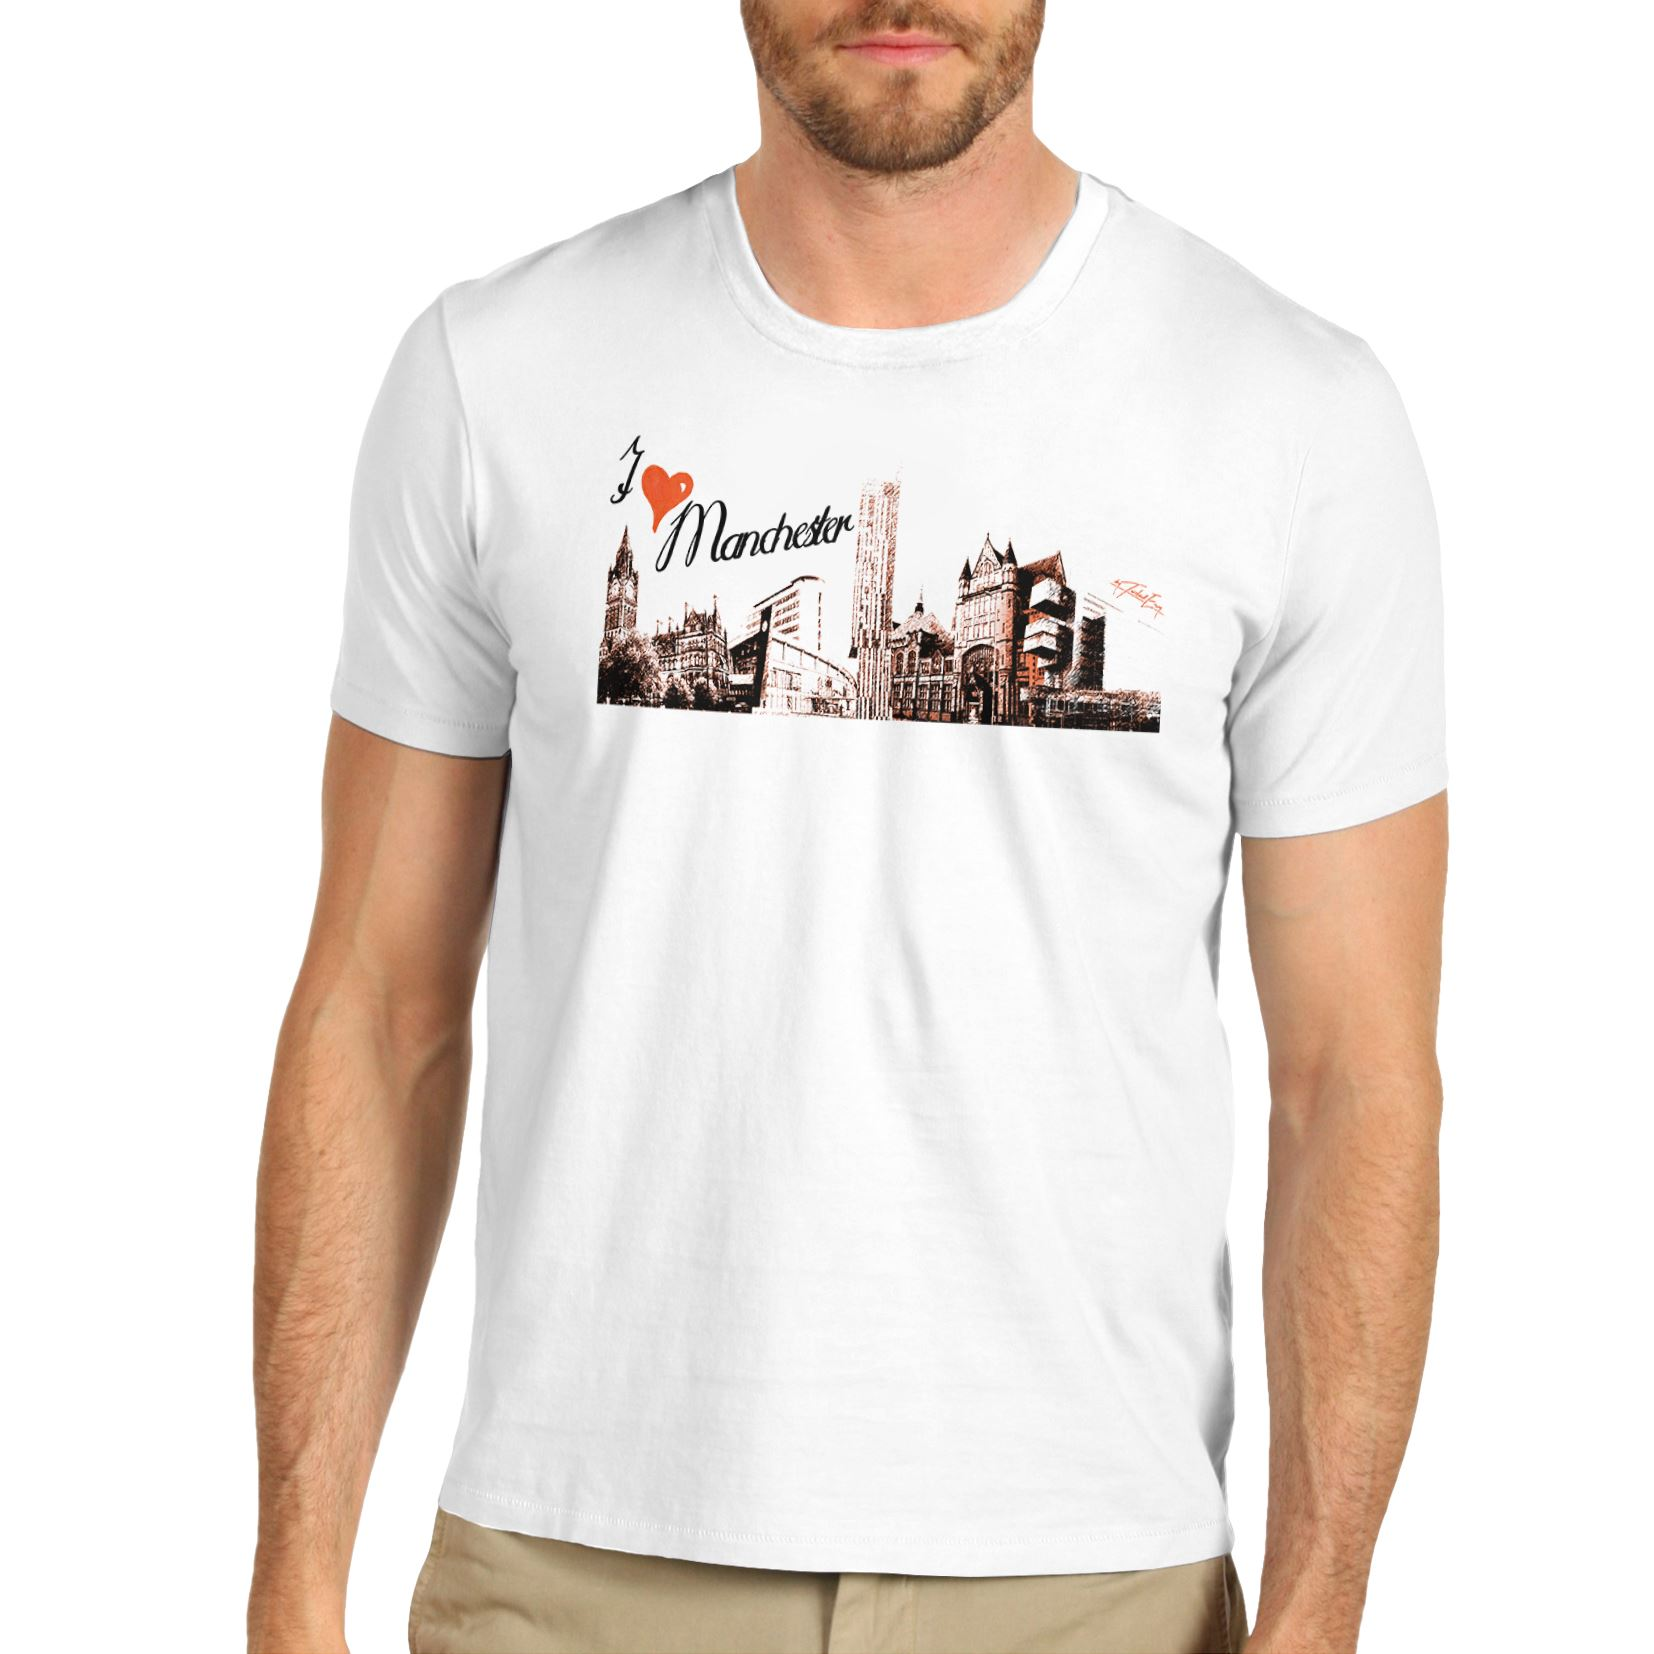 Design your own t shirt virtual -  Your Own T Shirt Manchester Design Download